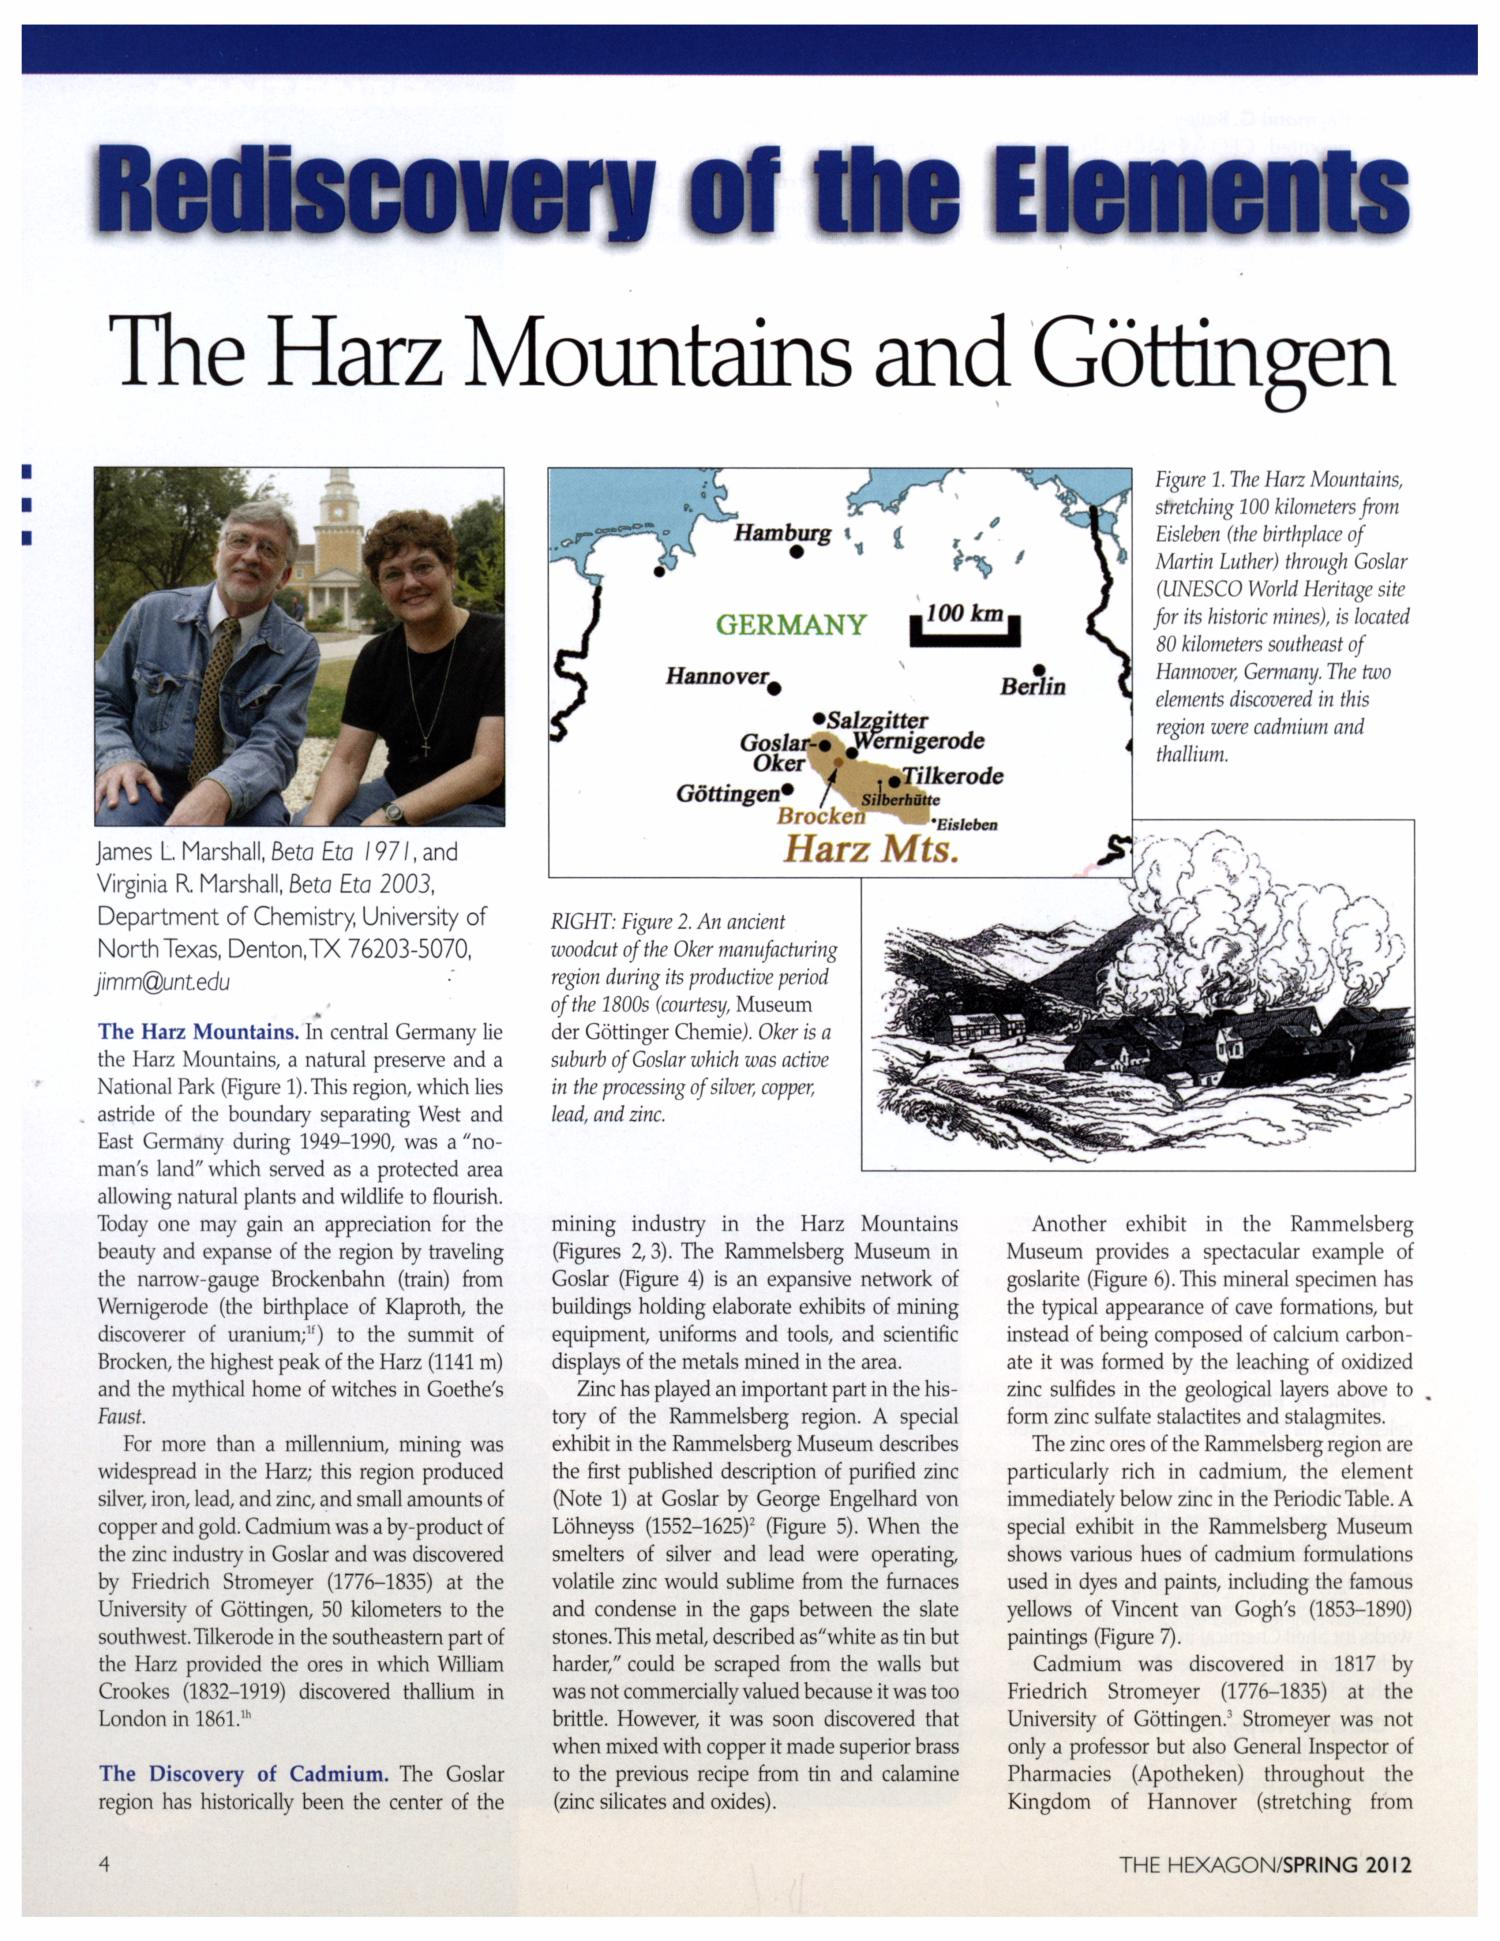 Rediscovery of the Elements: The Harz Mountains and Göttingen                                                                                                      [Sequence #]: 1 of 6